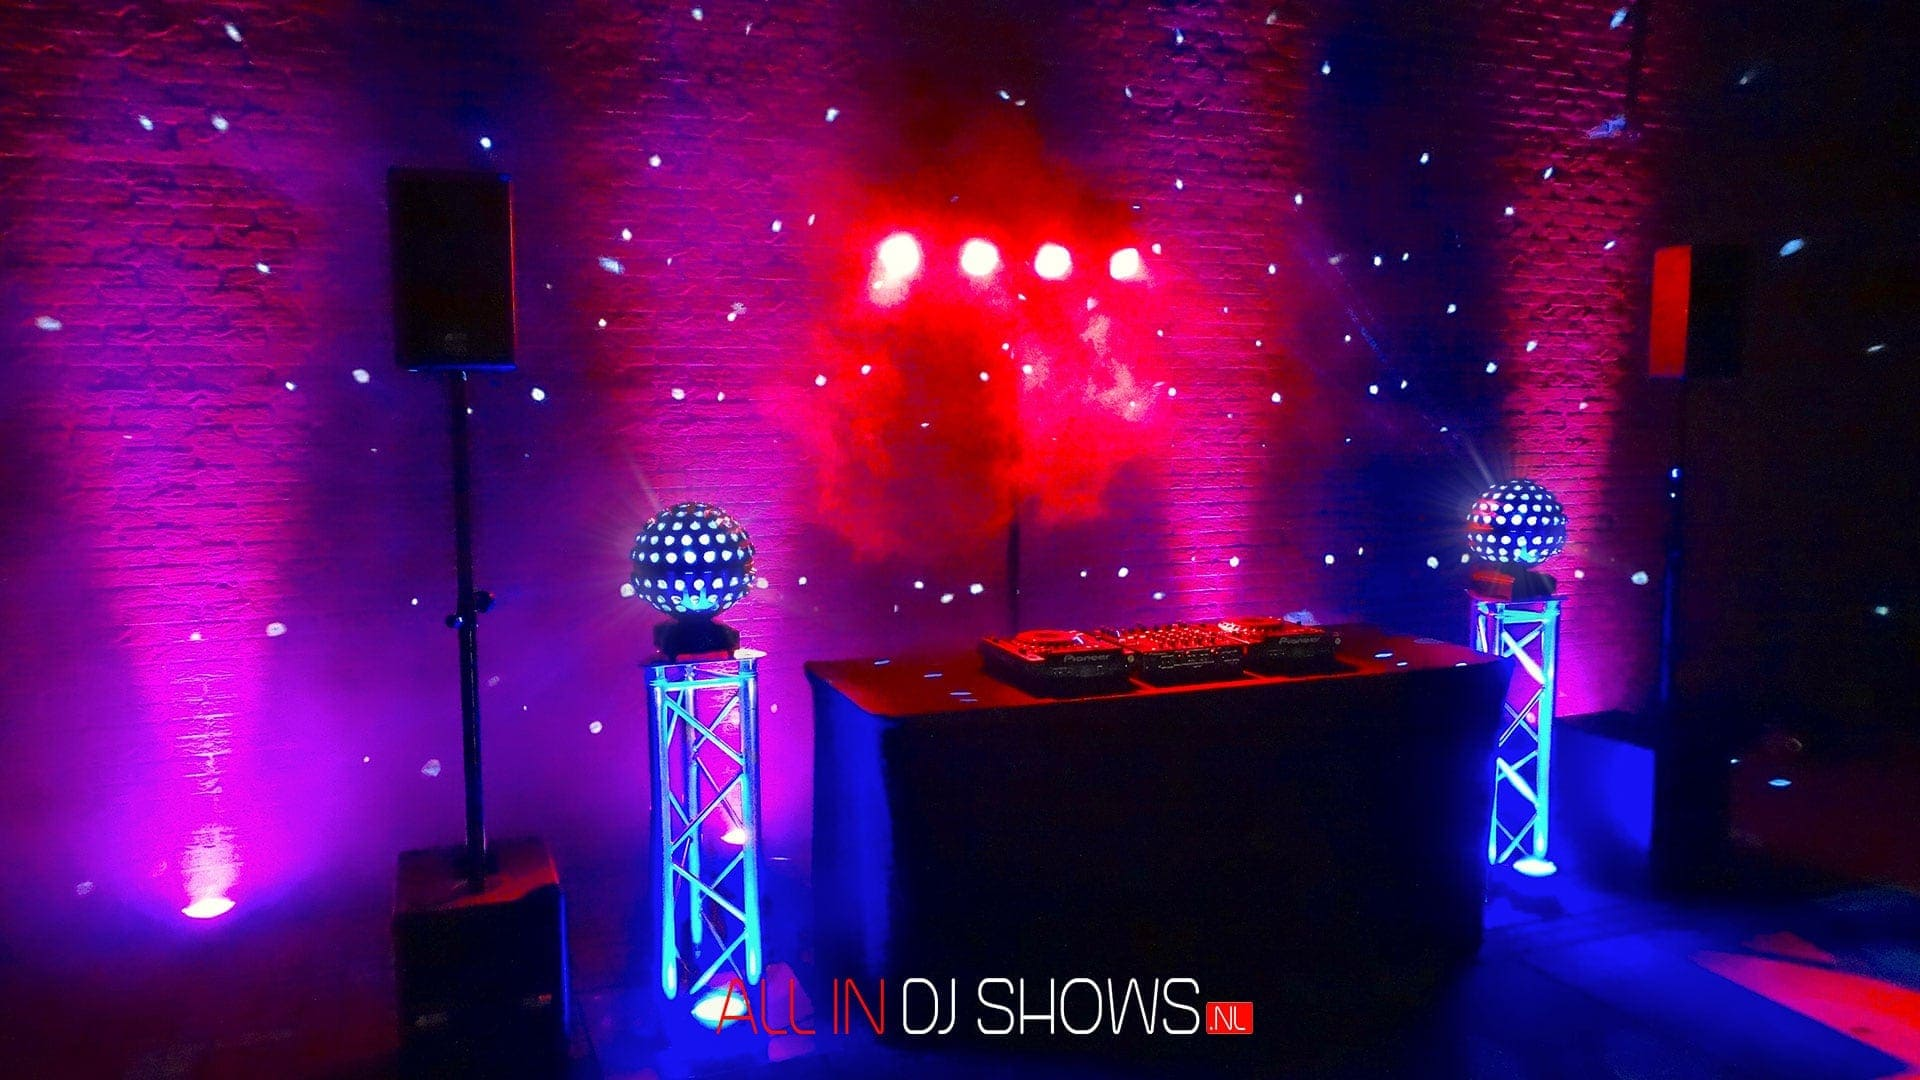 All-in-DJ-Show-Regular-standard-2